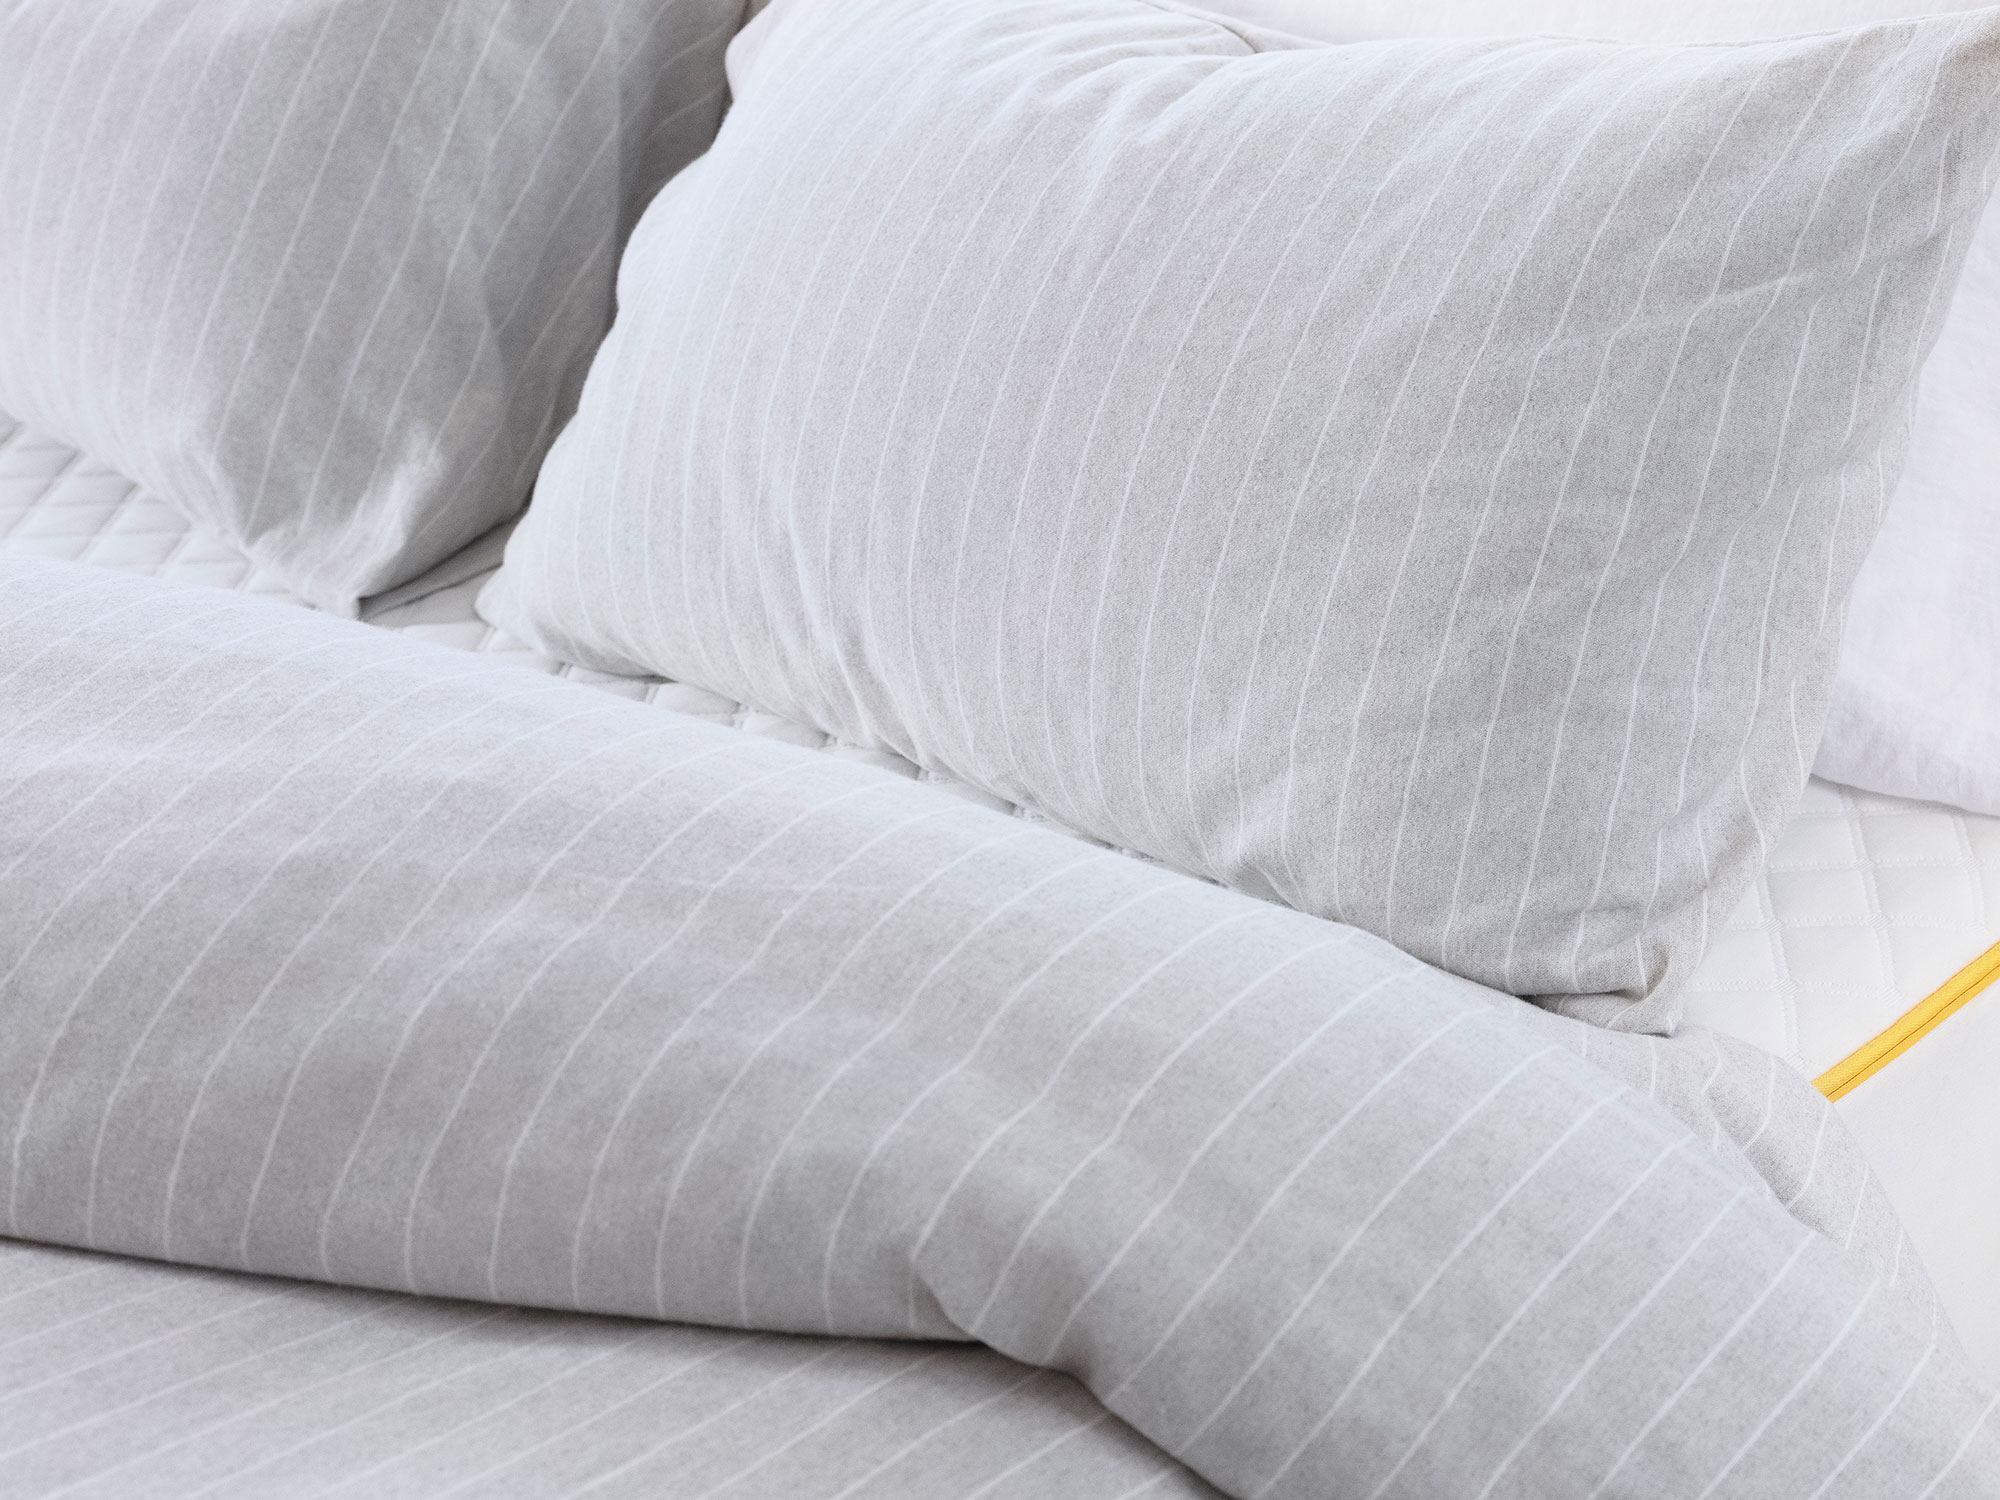 eve-sleep-brushed-cotton-sheets-detail